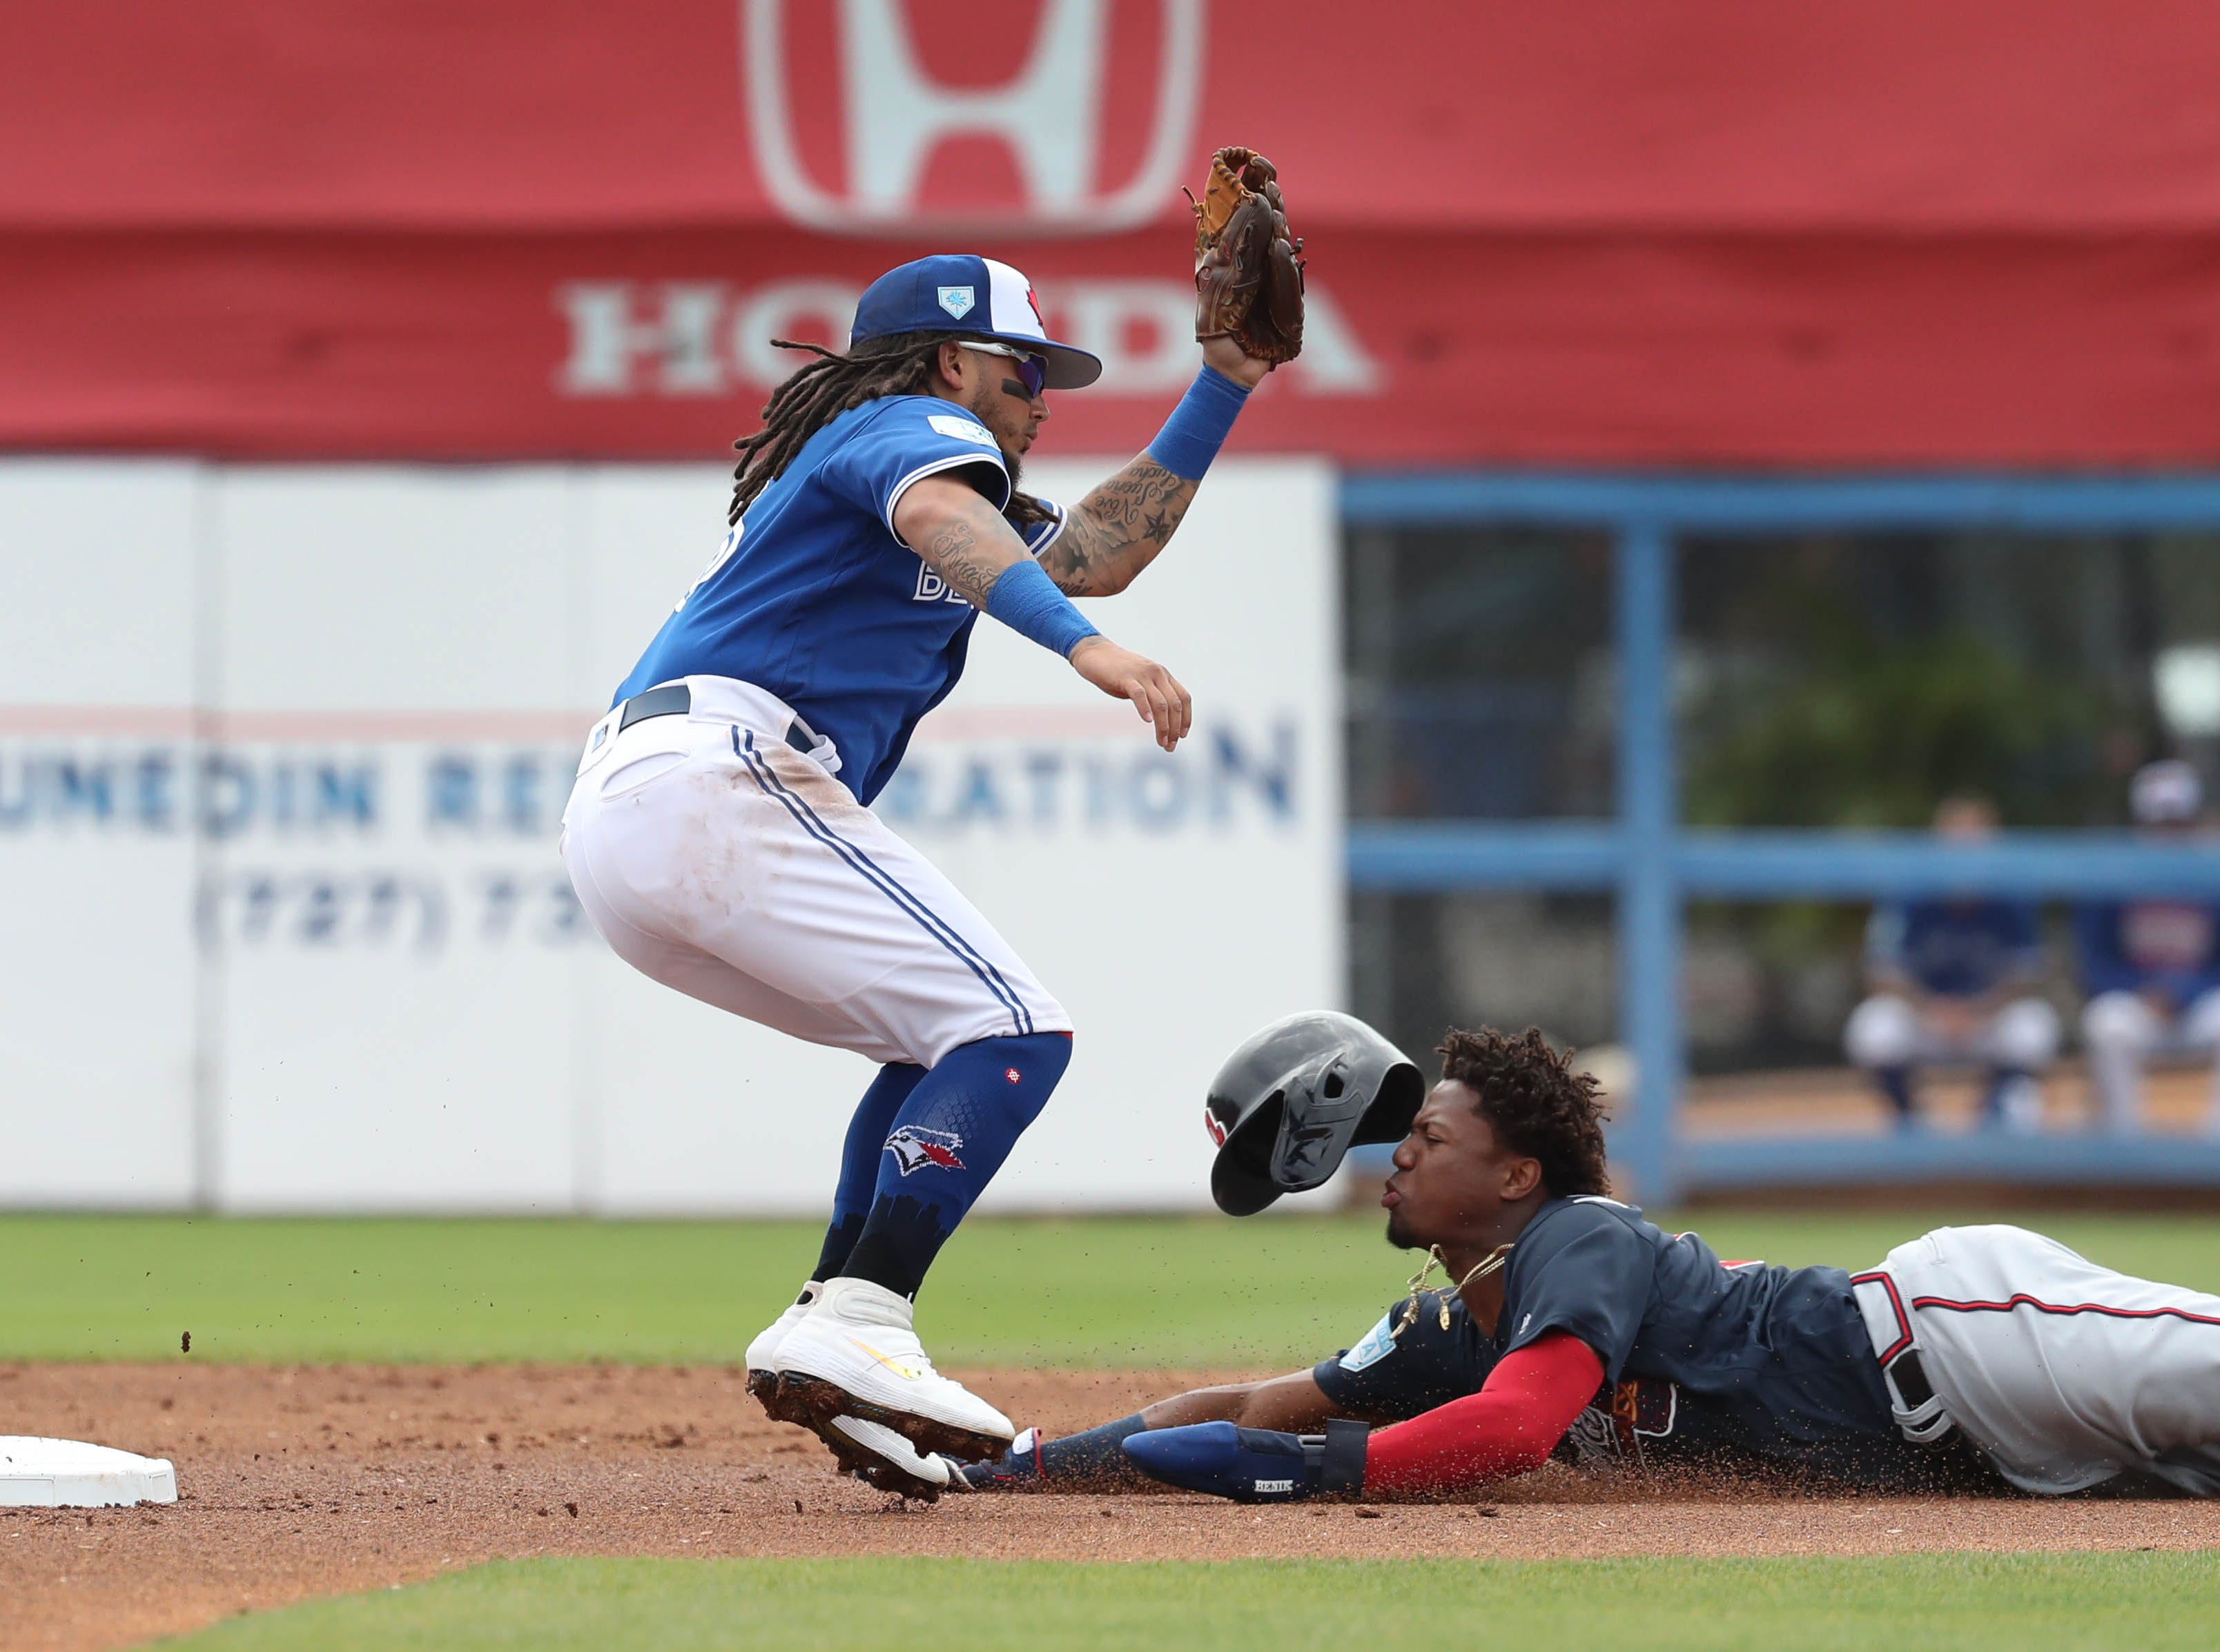 March 20: Braves outfielder Ronald Acuna Jr. steals second base as Blue Jays shortstop Freddy Galvis goes for the tag.